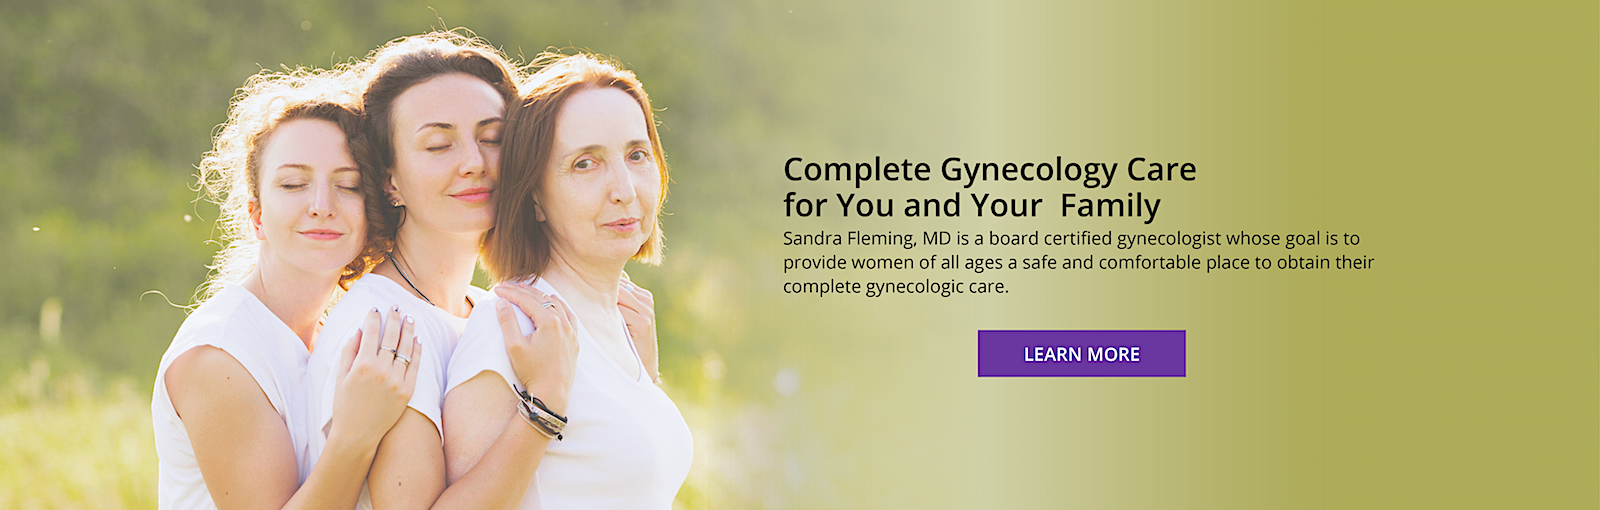 Gynecological Care